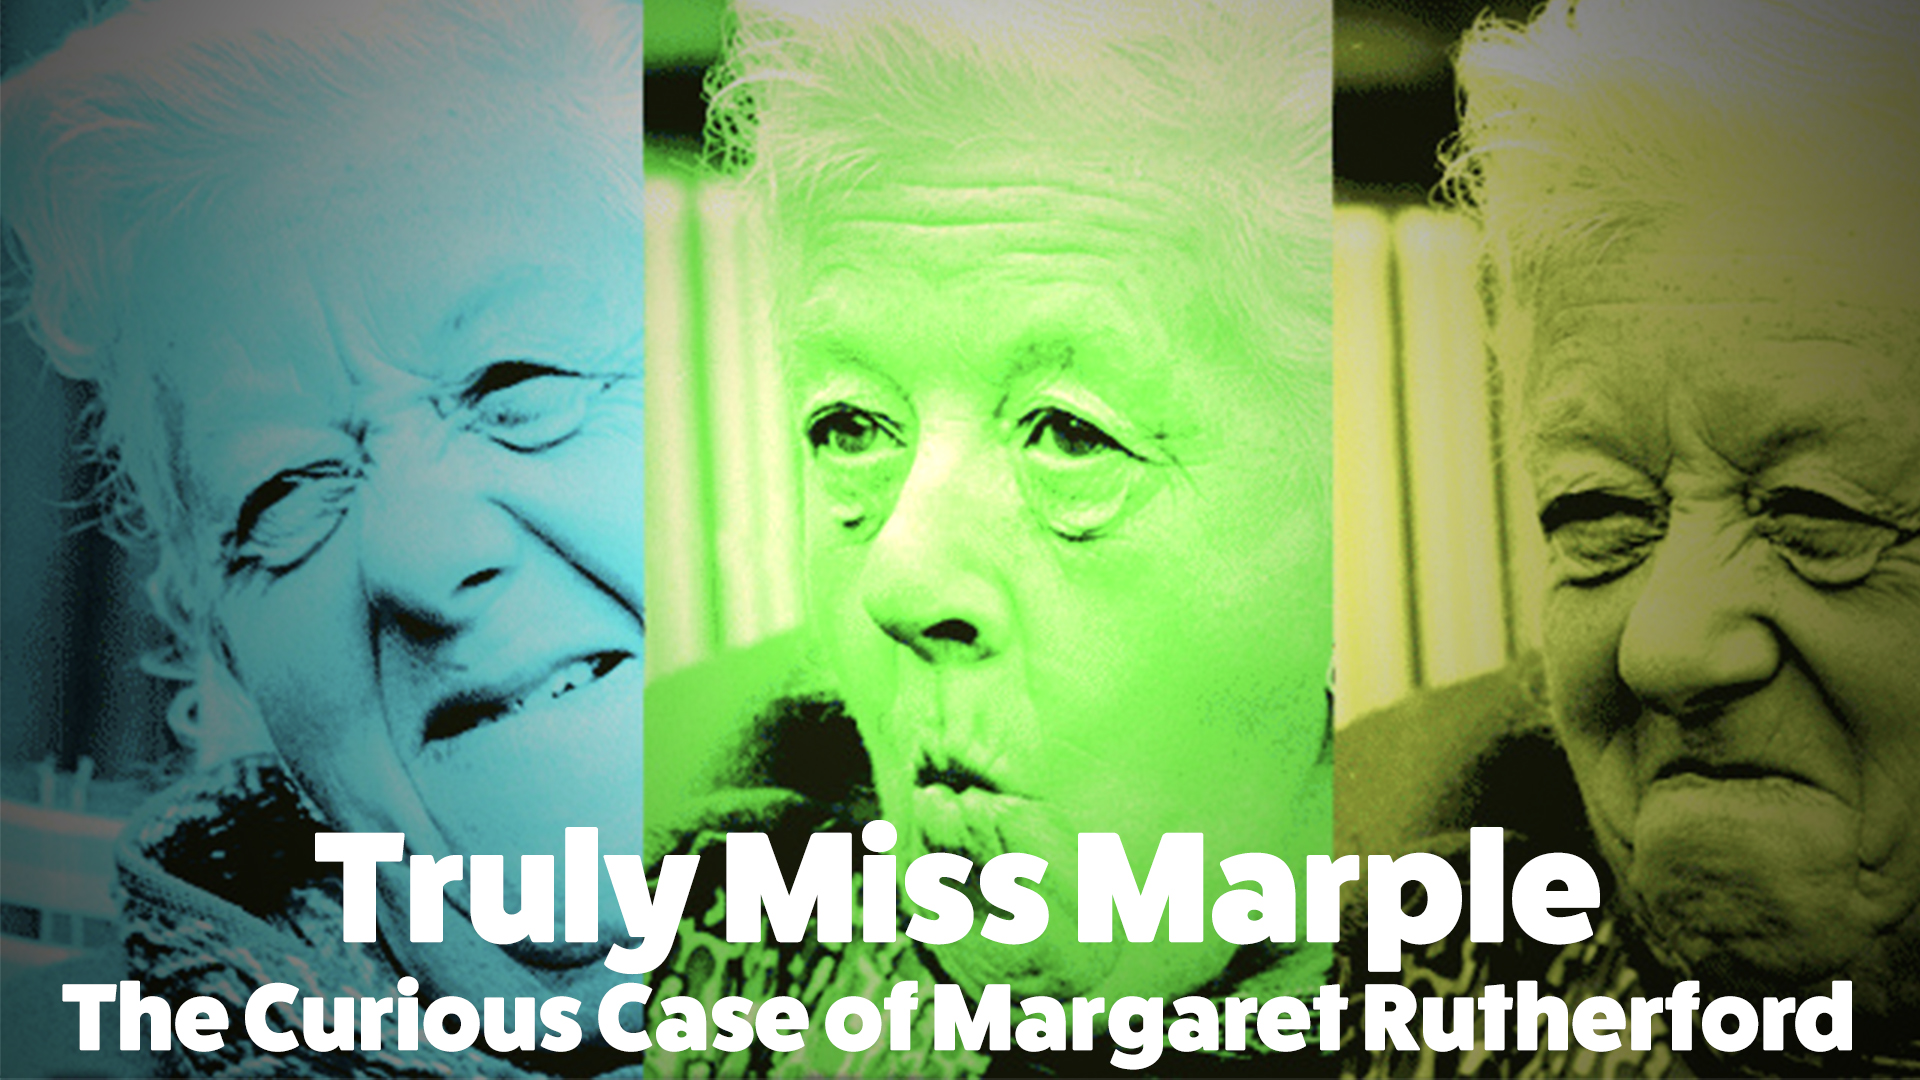 Truly Miss Marple - The Curious Case of Margaret Rutherford